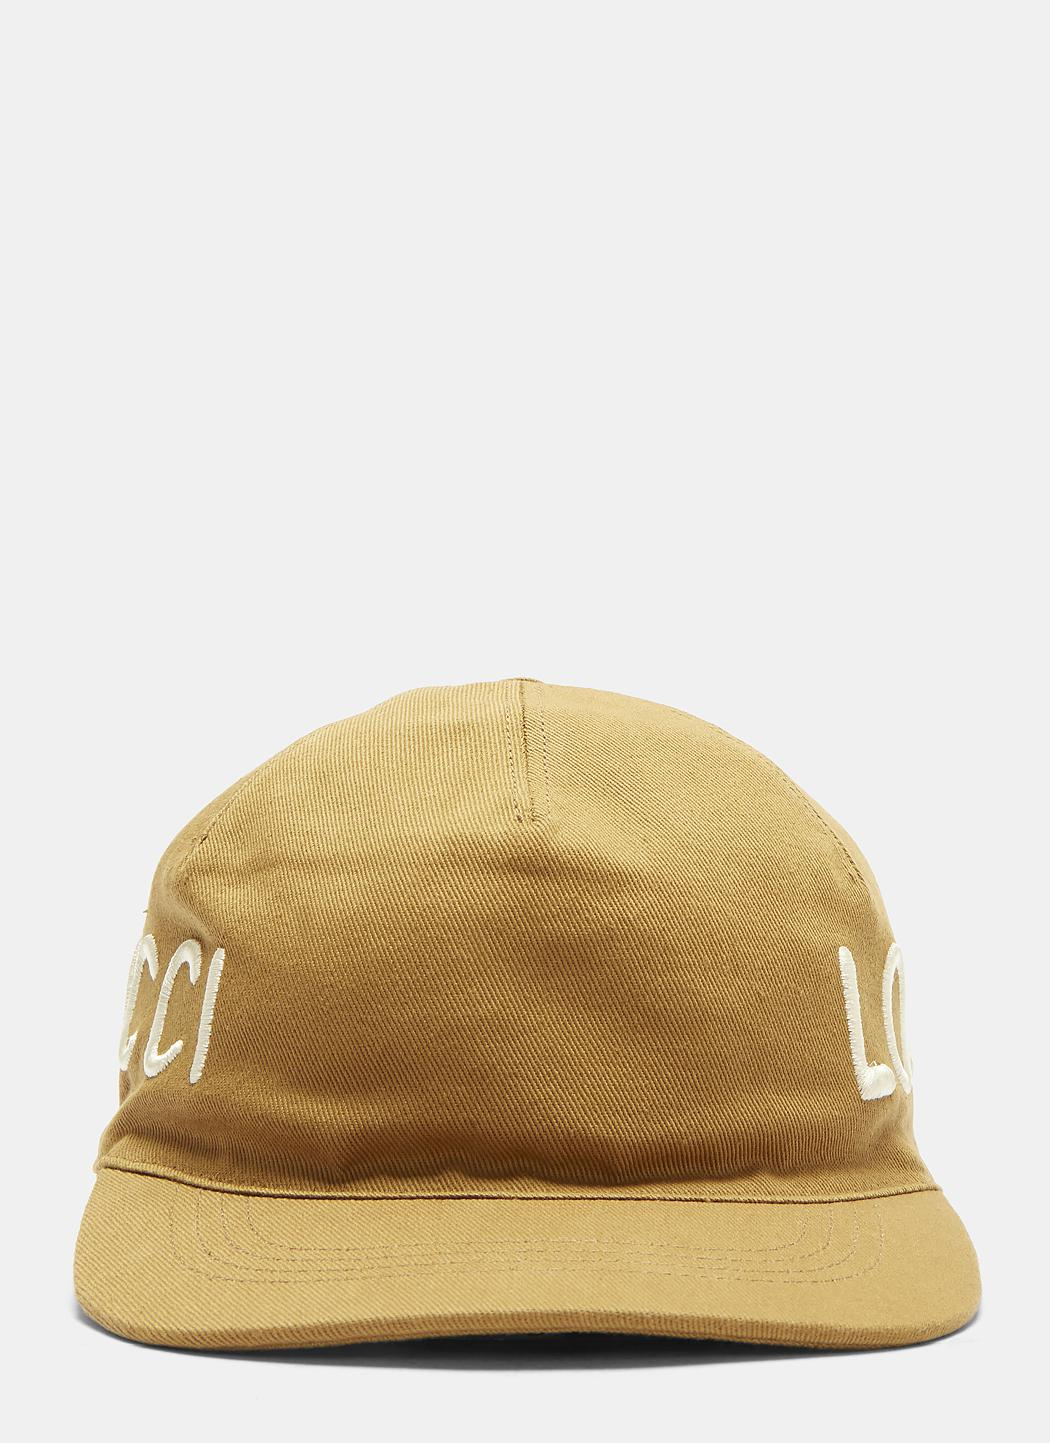 Khaki Loved Cap Gucci rclZH